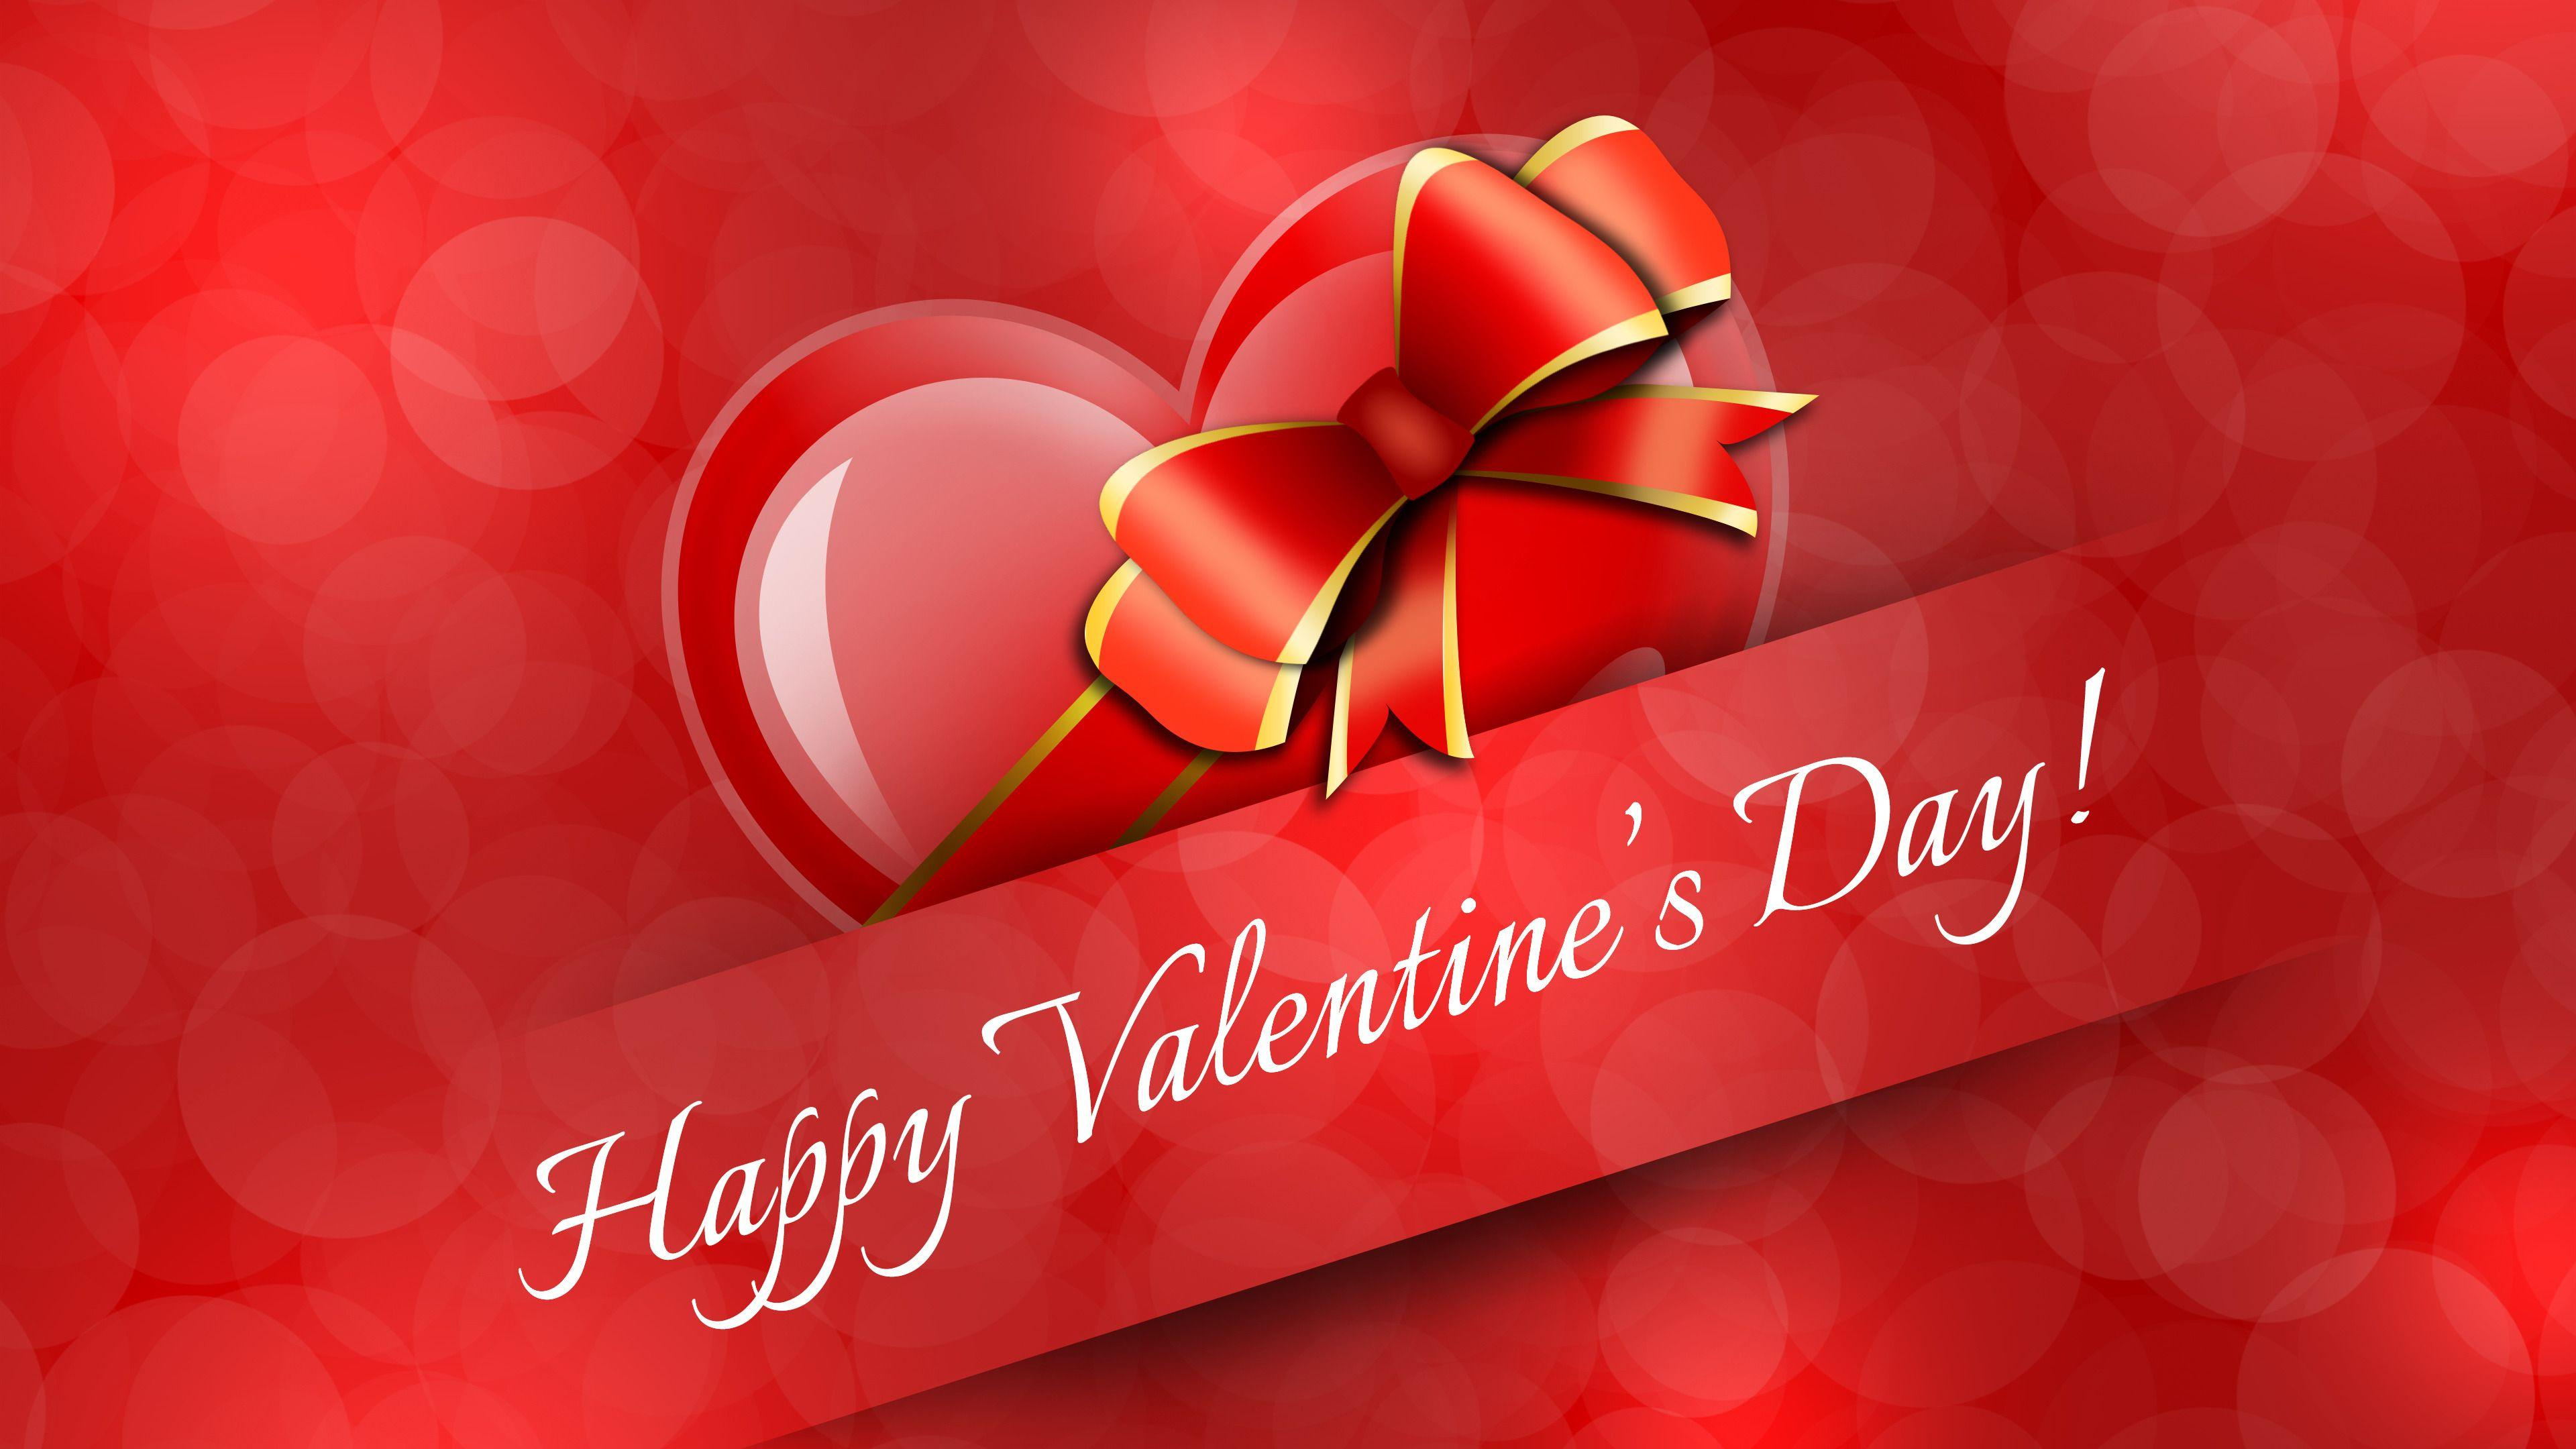 Happy Valentines Day Wallpapers 2018| Love Wallpaper Download